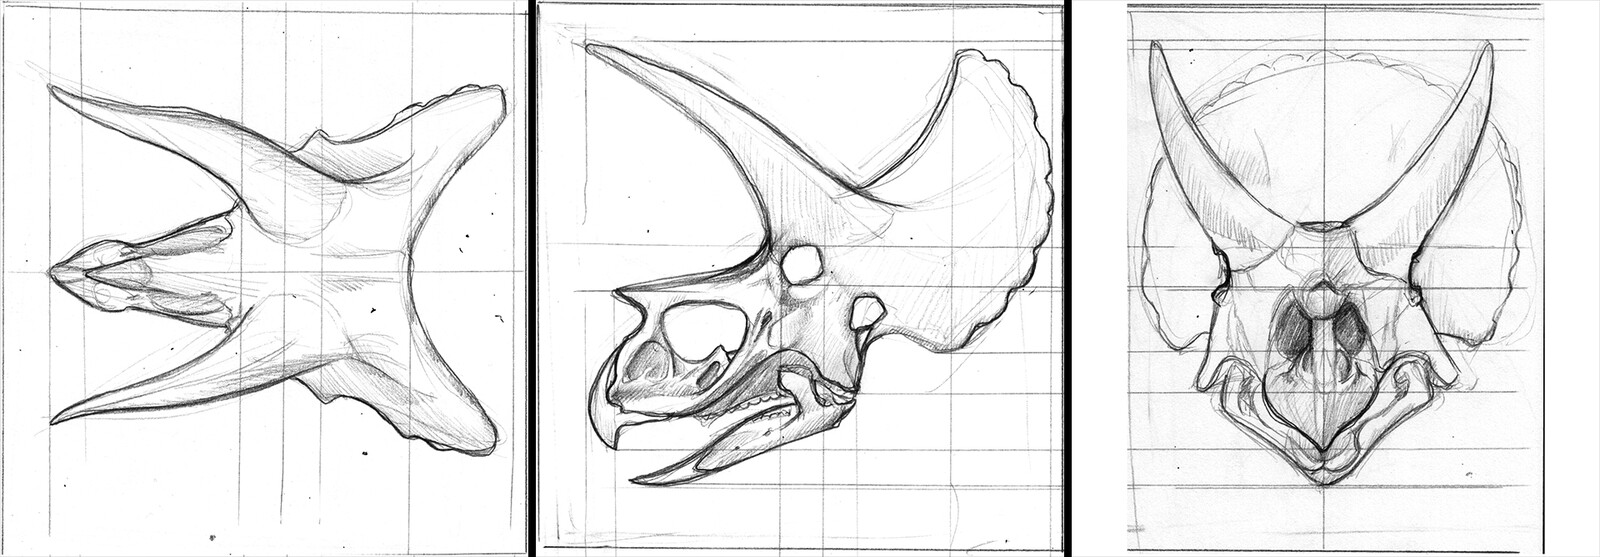 Reference sketched for image planes